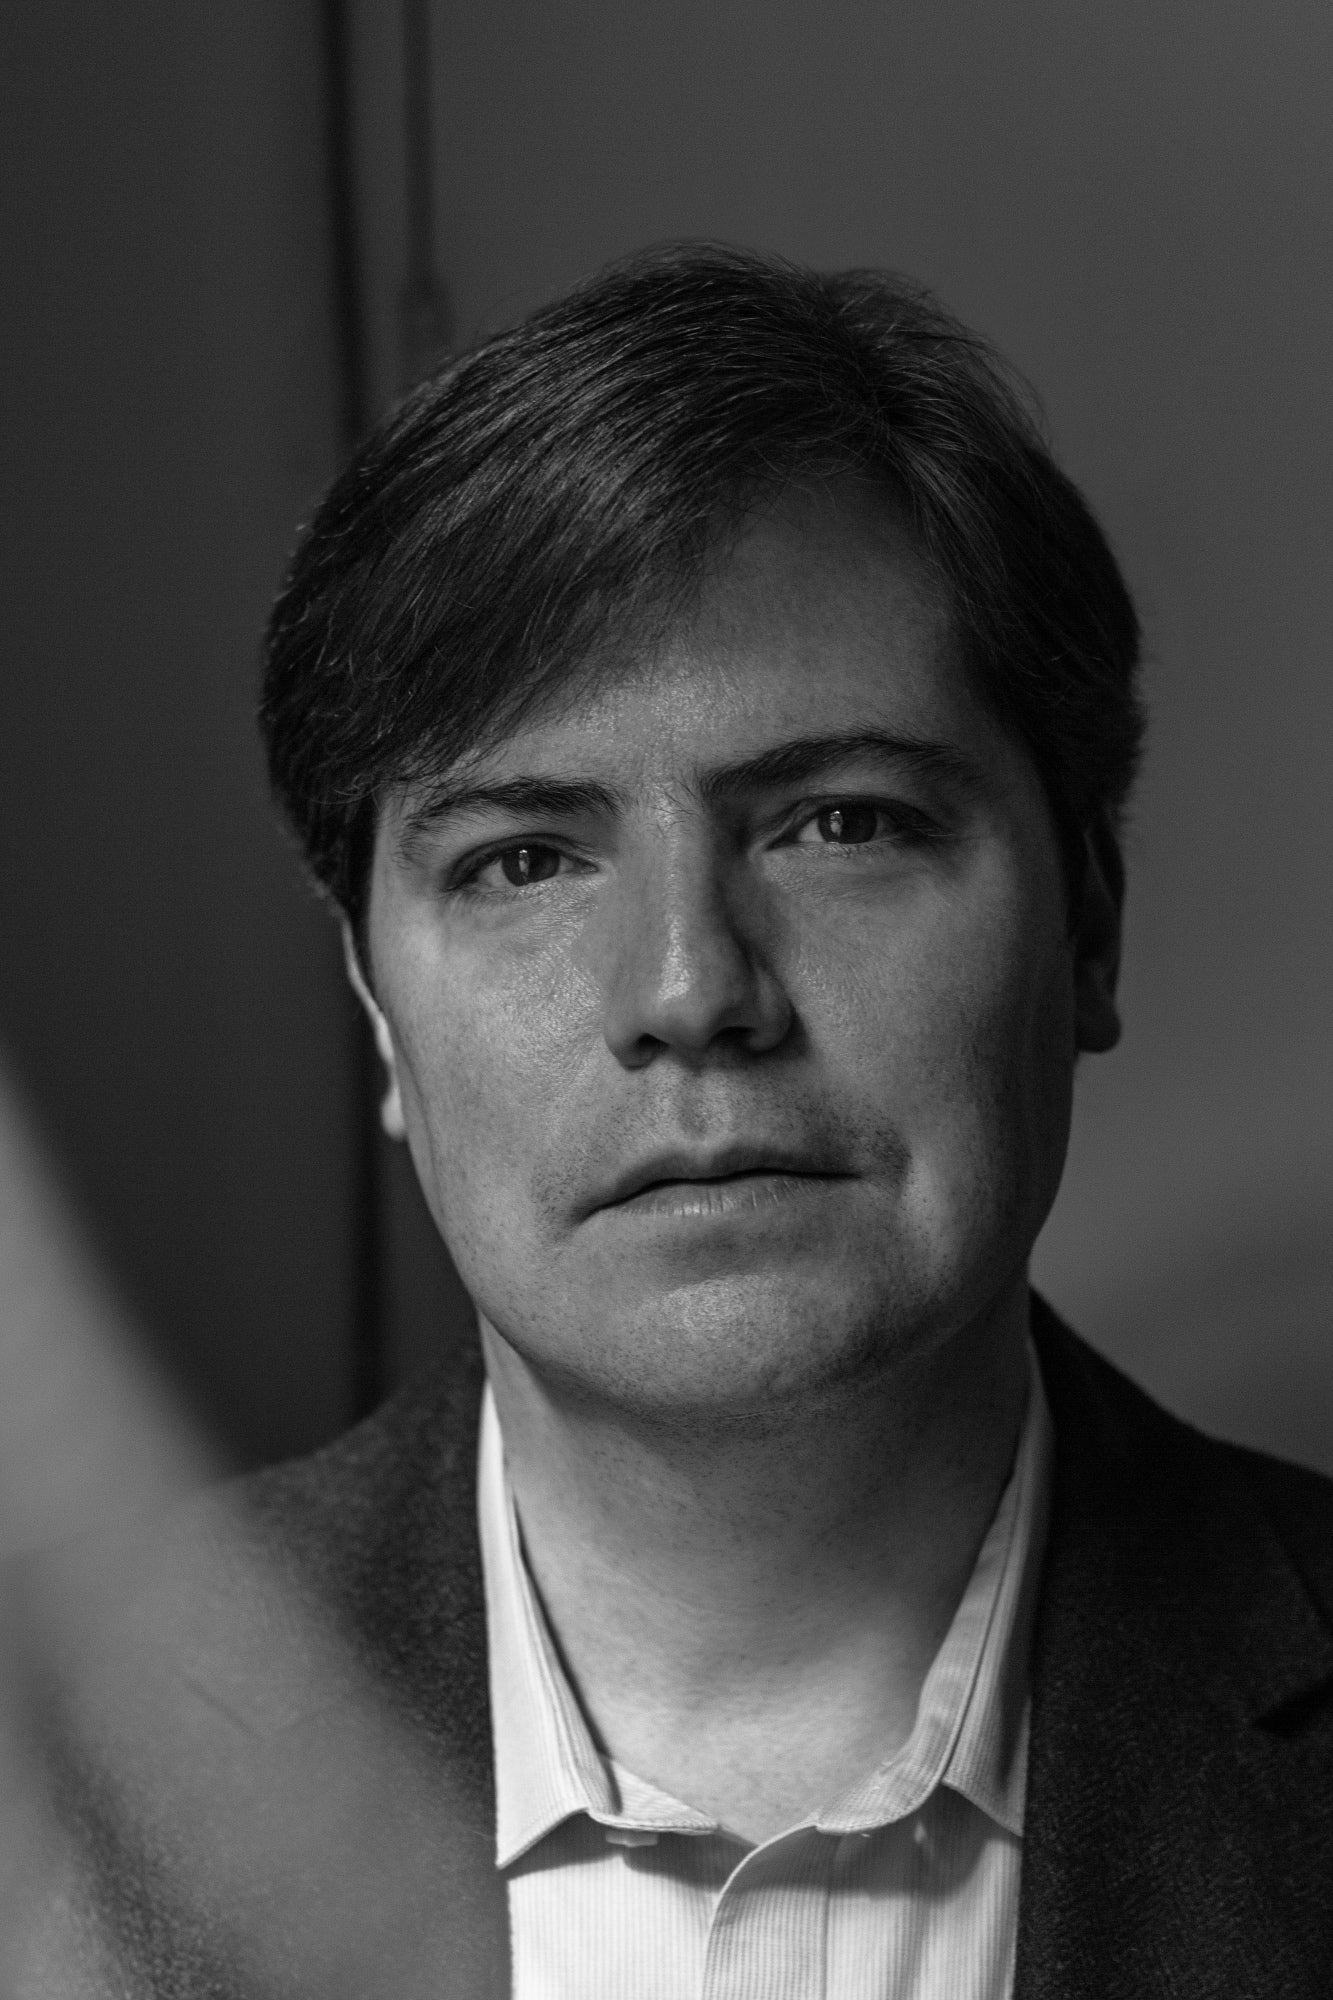 Mexican filmmaker Andres Clariond